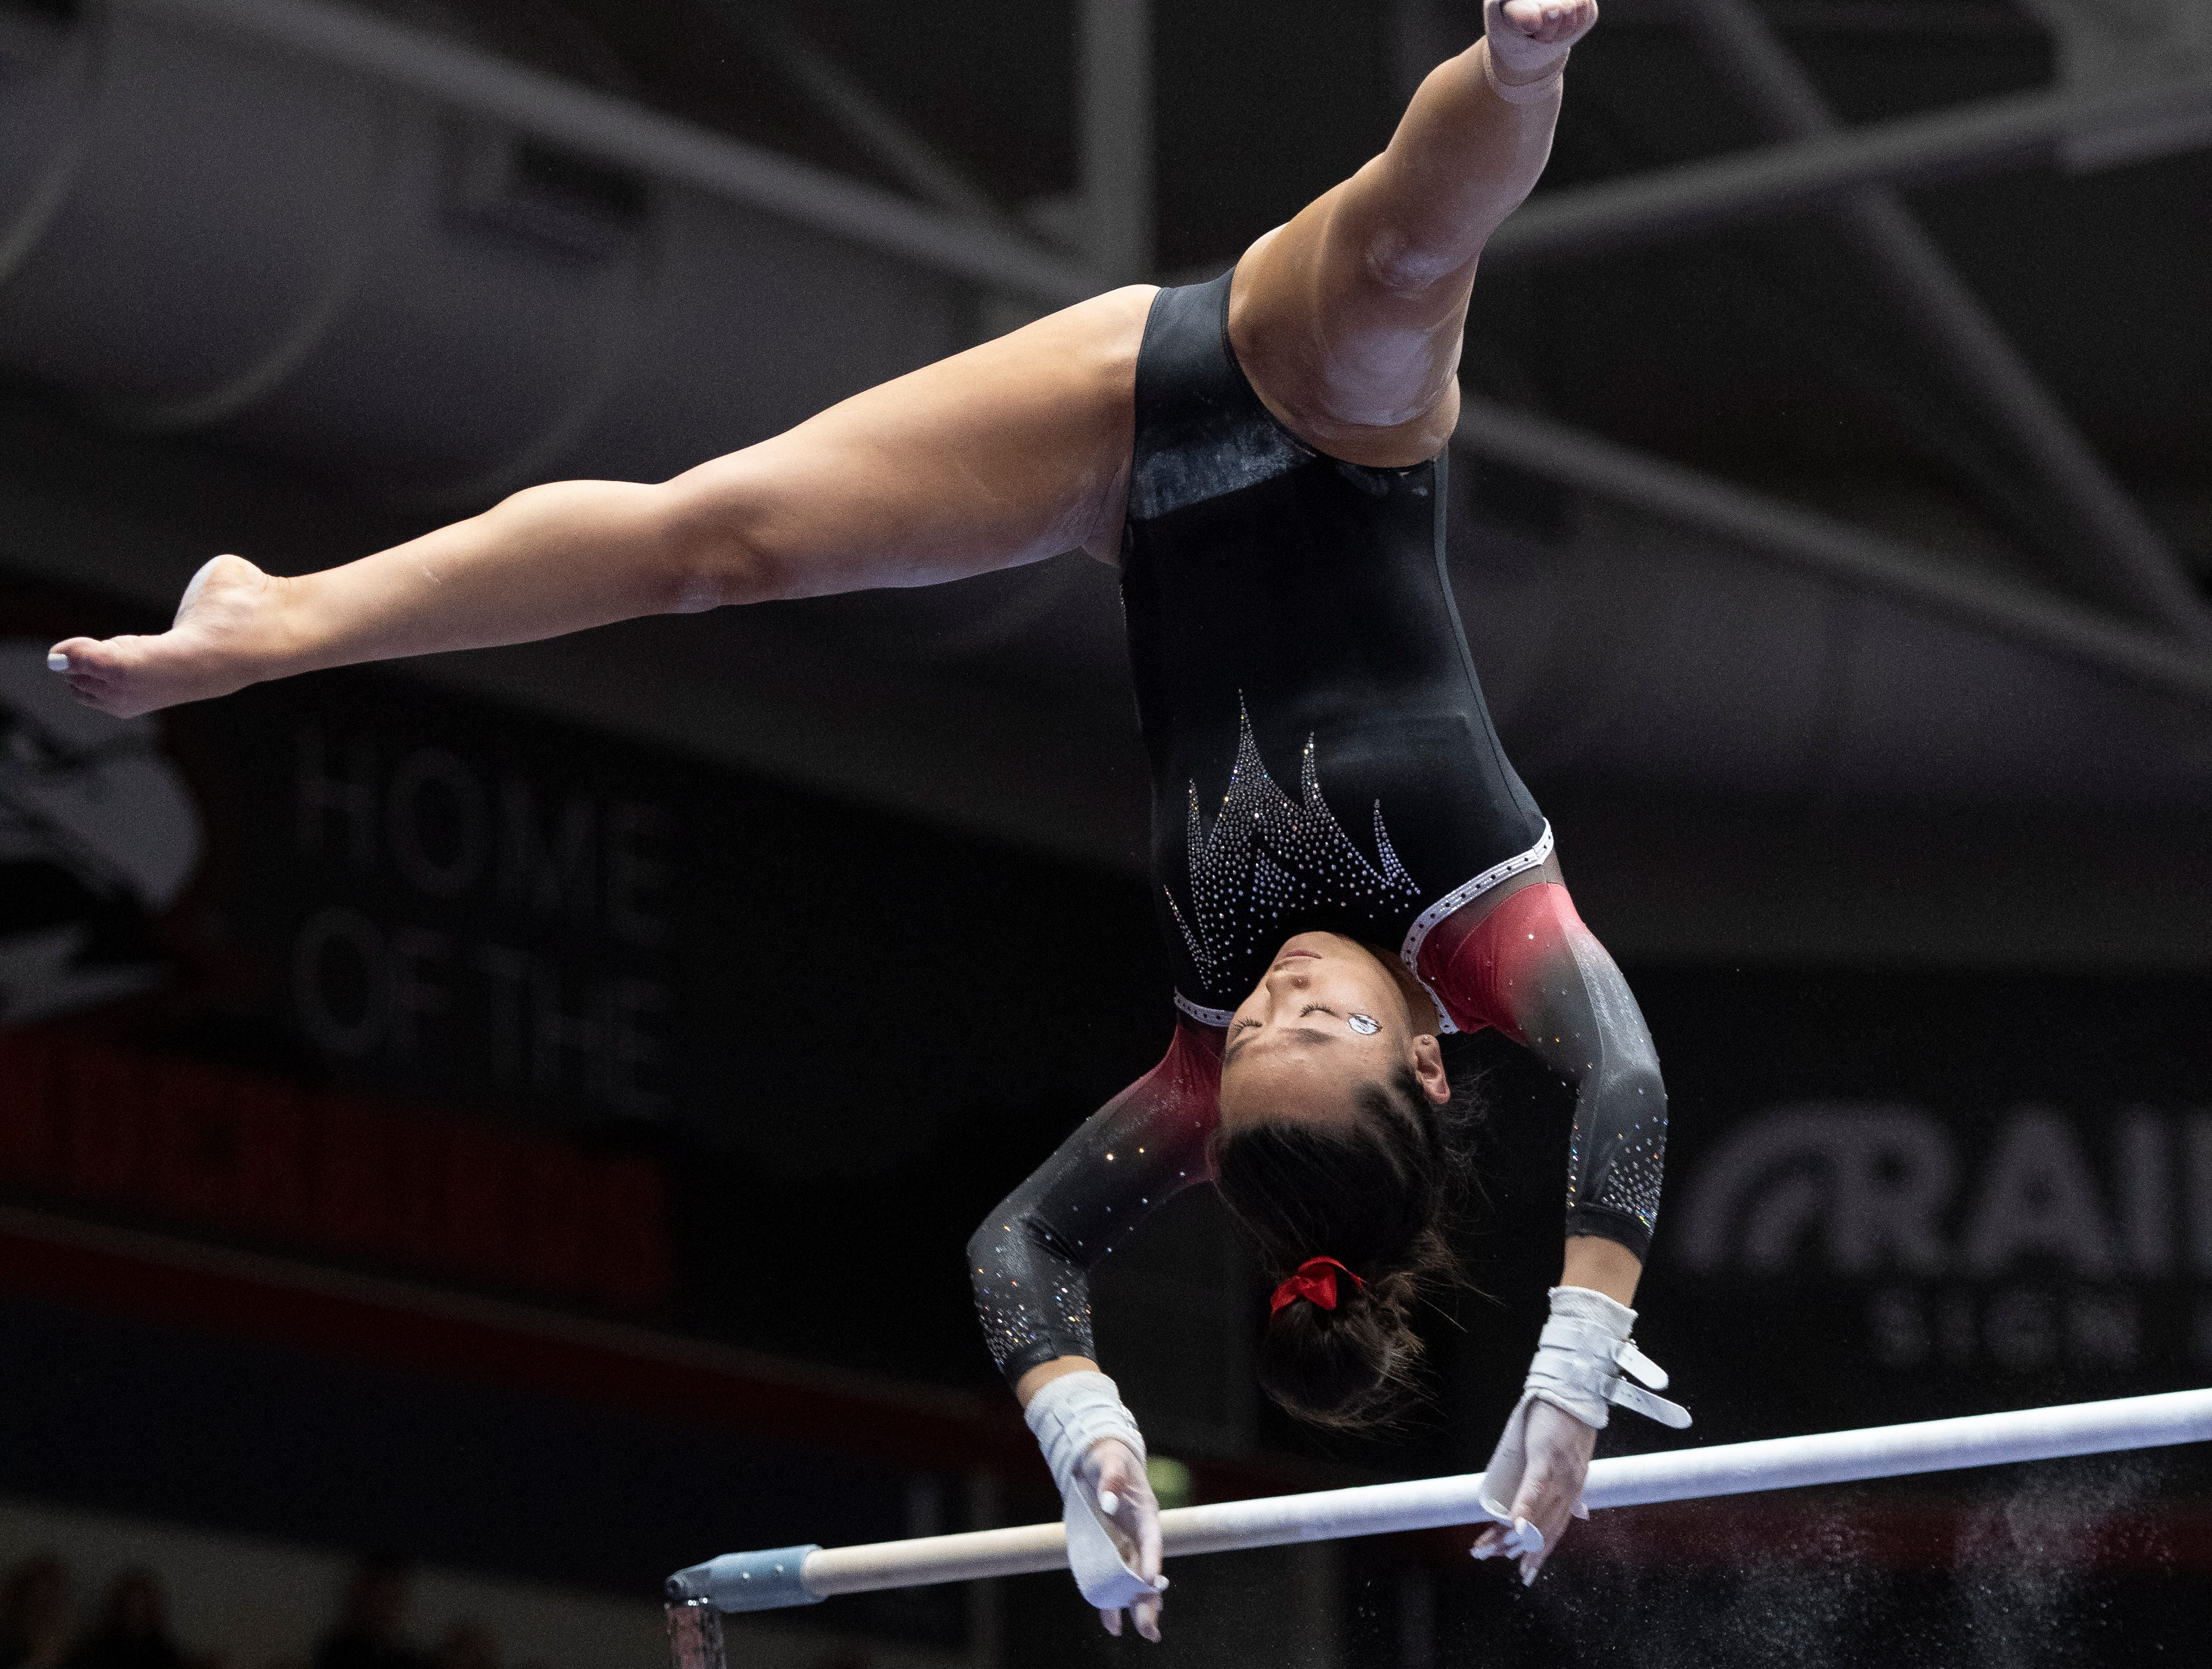 The Southern Utah Flippin' T-Birds win their gymnastics meet against New Hampshire in the America First Event Center Monday, January 7, 2019.